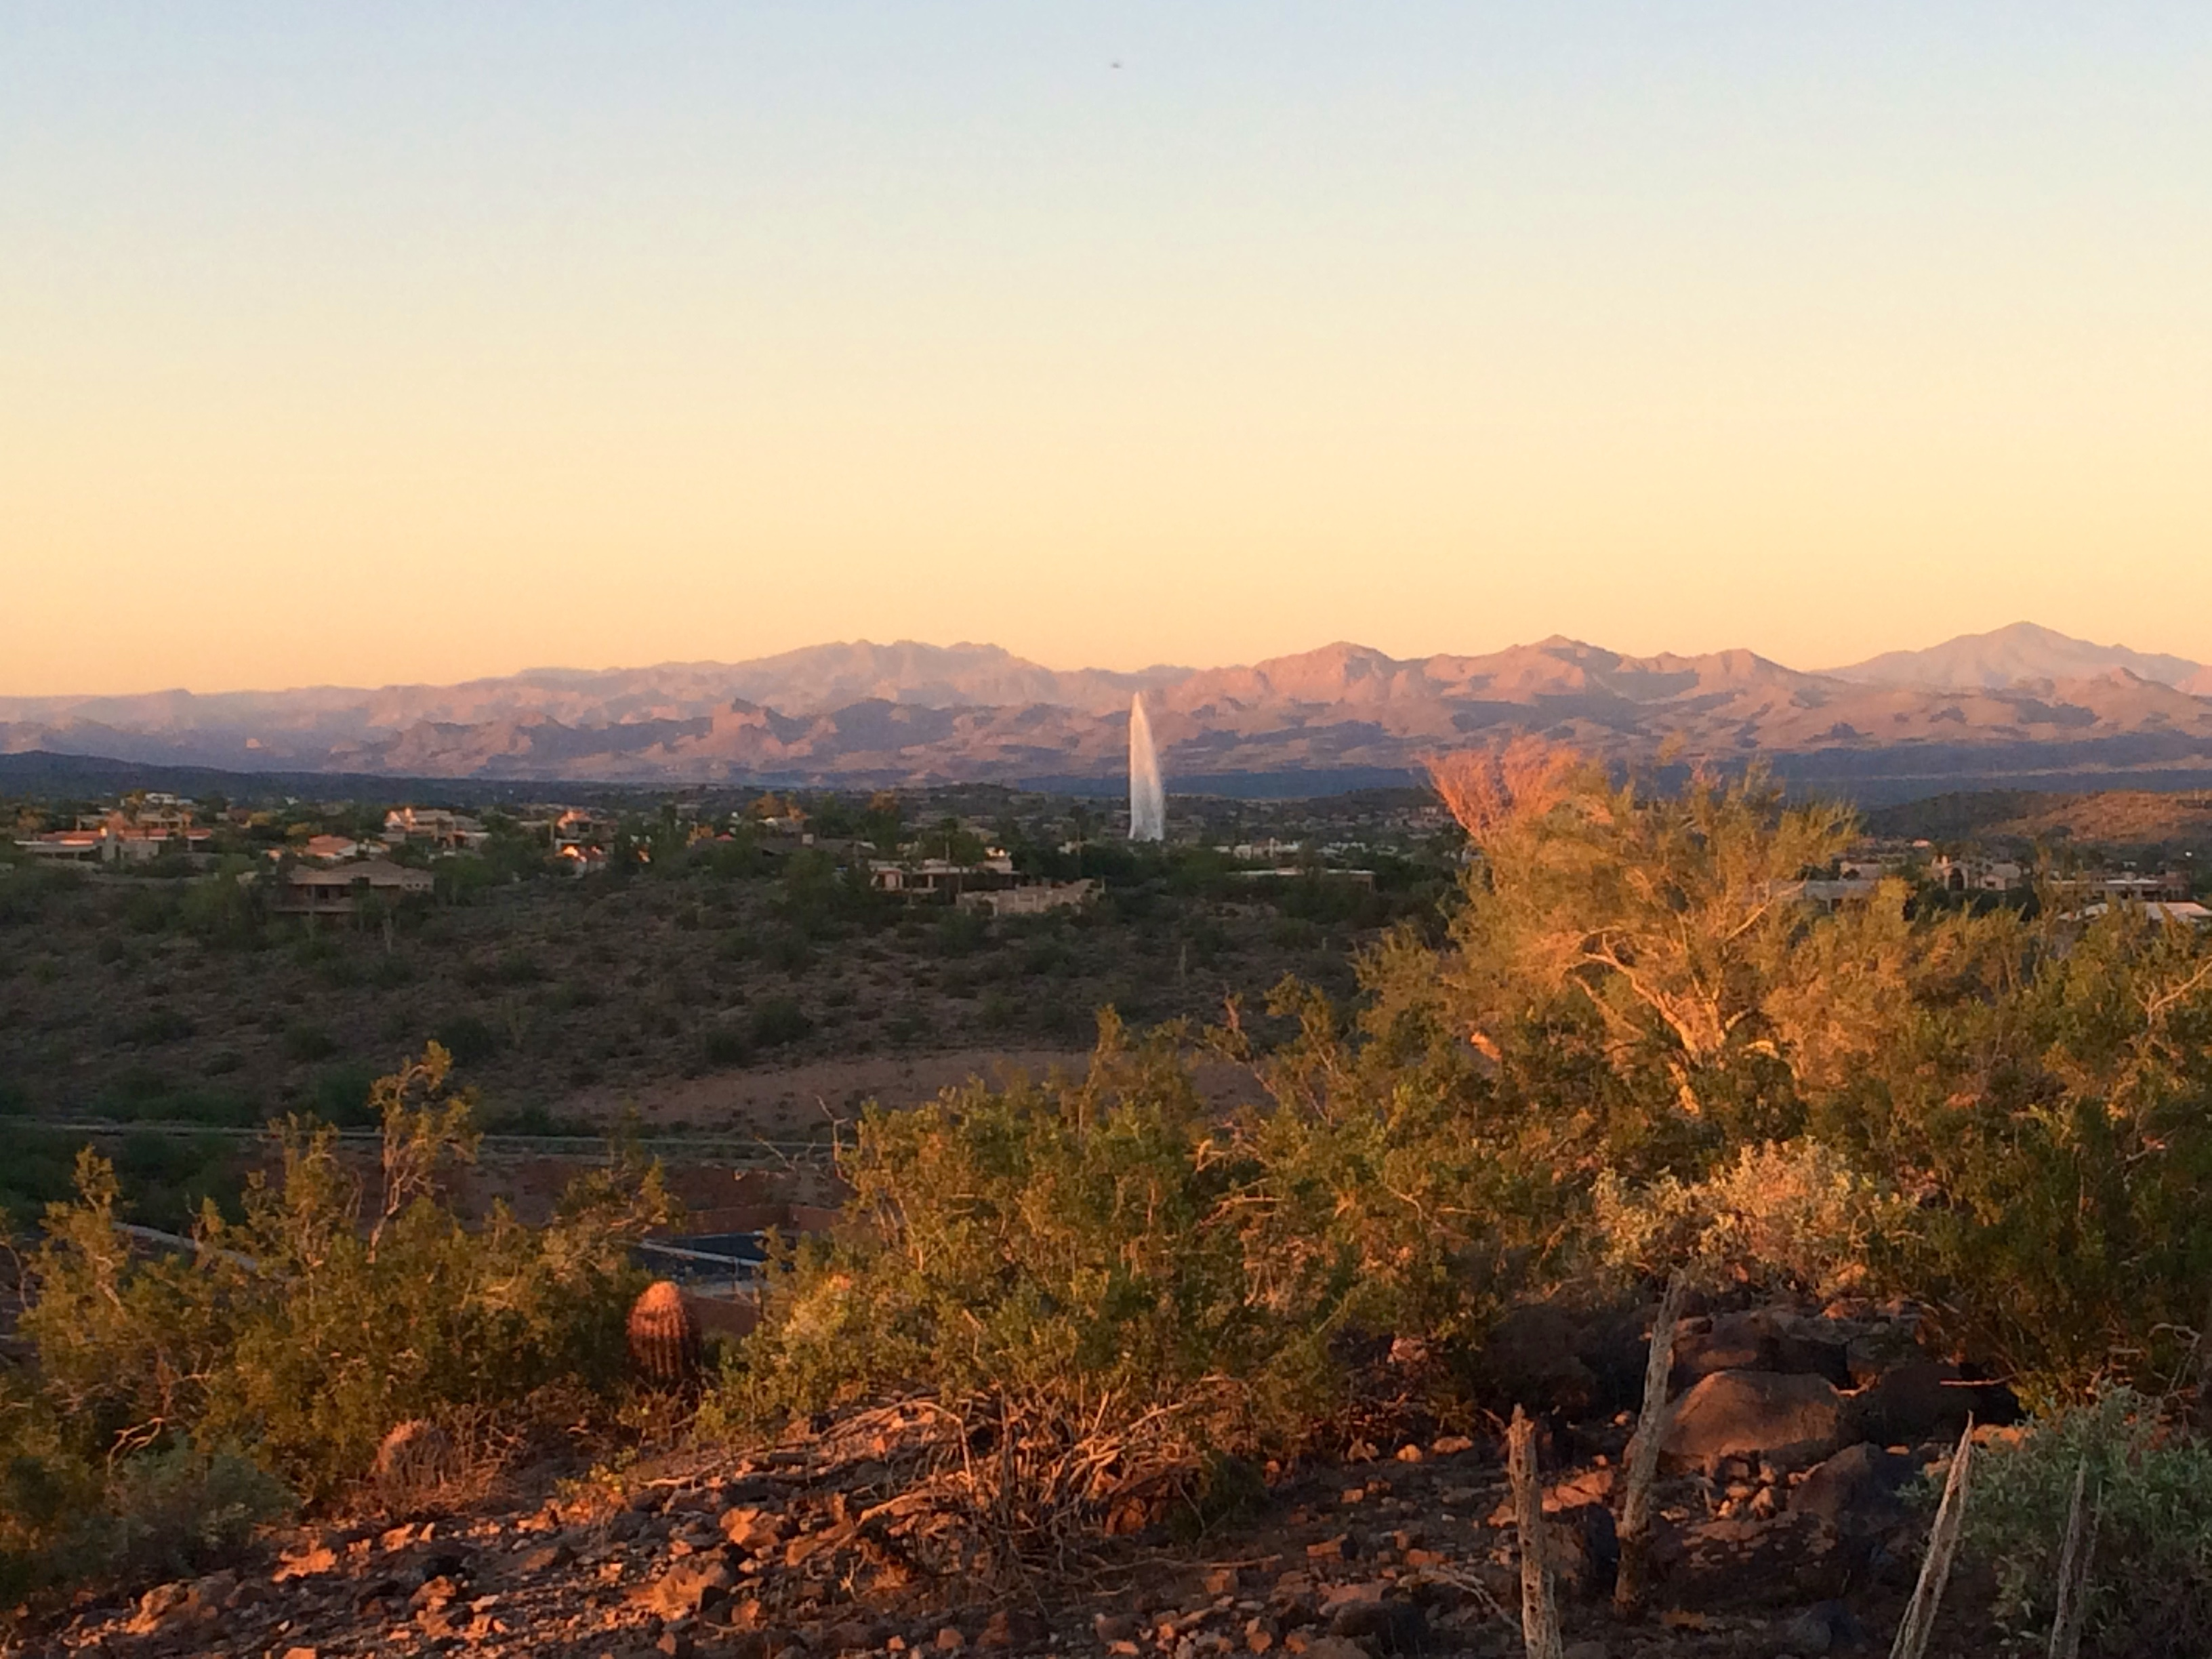 fountain hills Find discounts and deals on cheap car rentals in fountain hills, phoenix compare the best prices on carrentalscom and rent a car in fountain hills today.